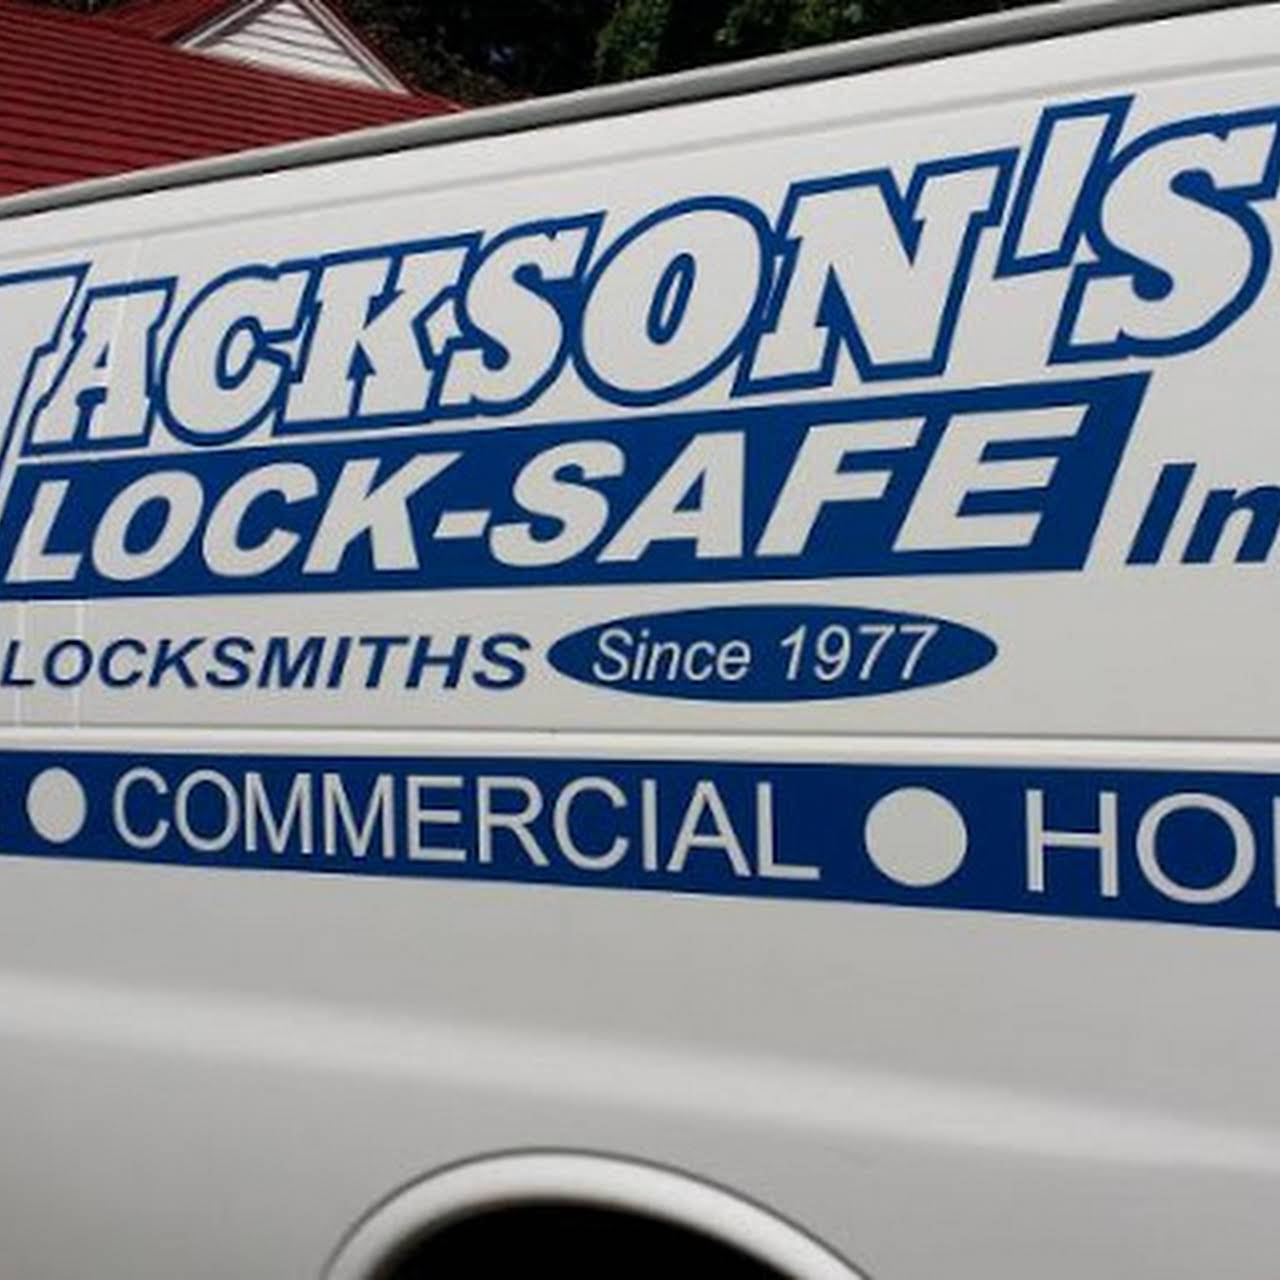 Jacksons Lock & Safe inc - Locksmith in Kitchener-Waterloo